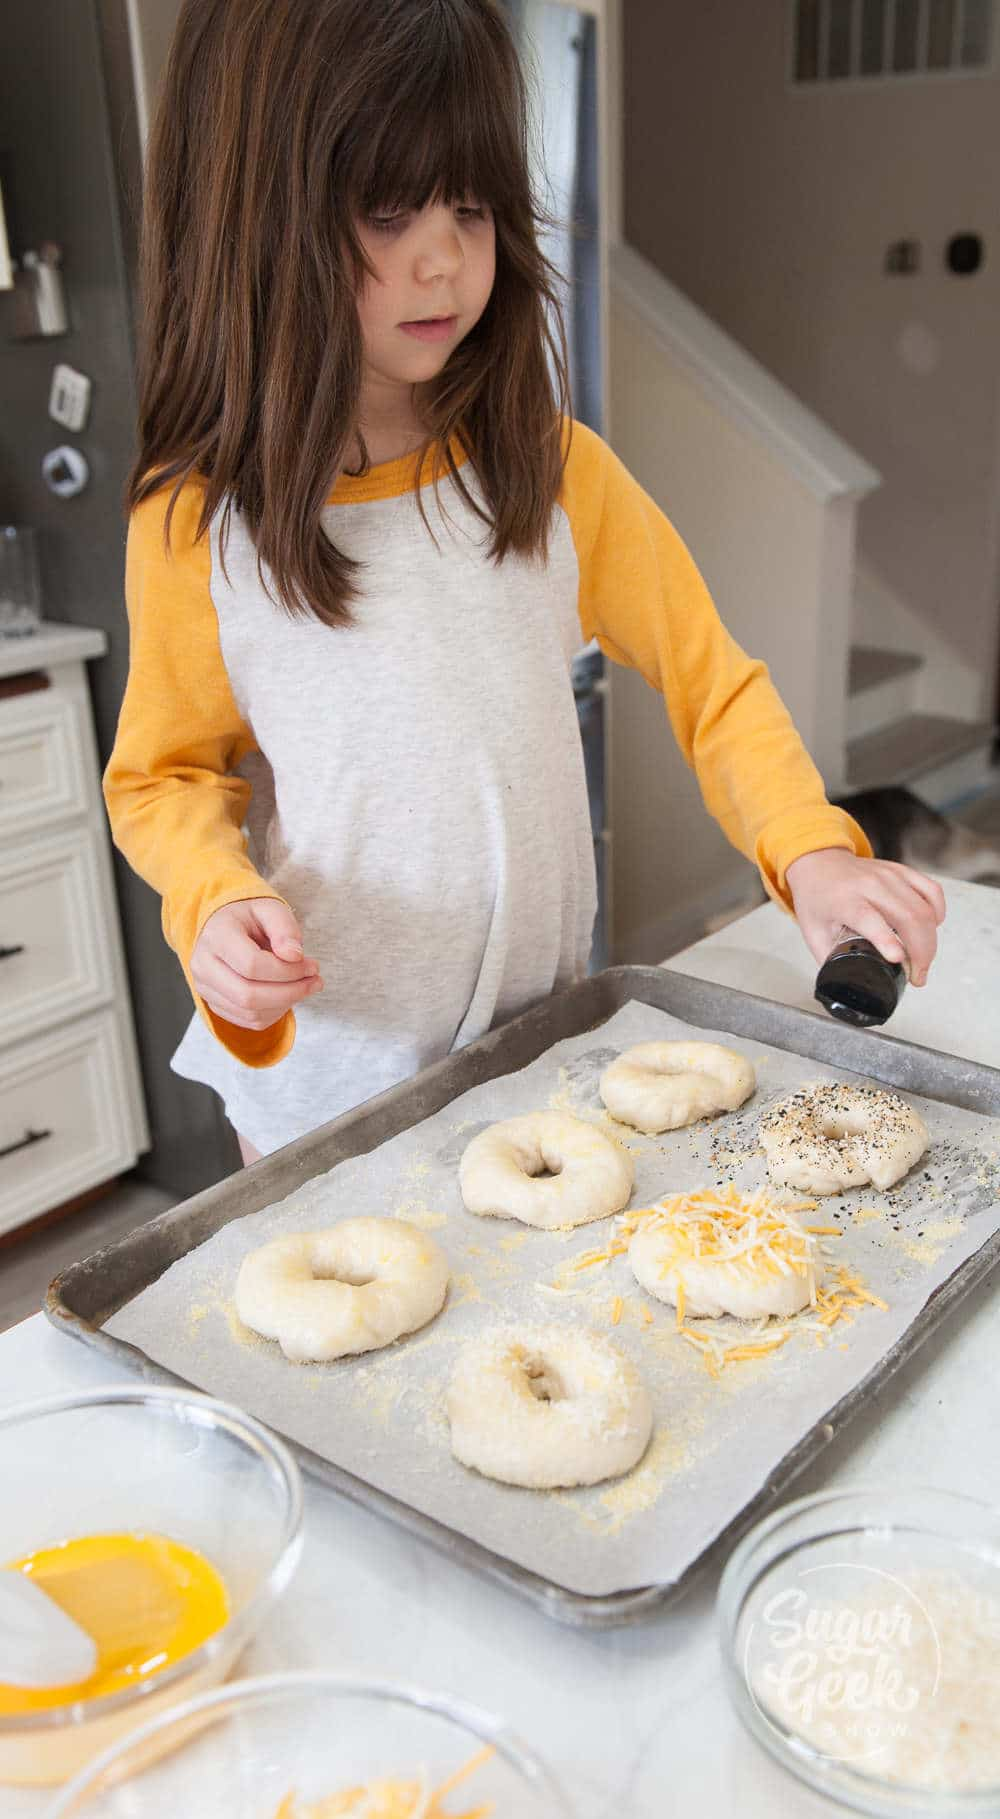 little girl with shoulder-length brown hair and yellow and white shirt sprinkling toppings onto bagels on a sheet pan